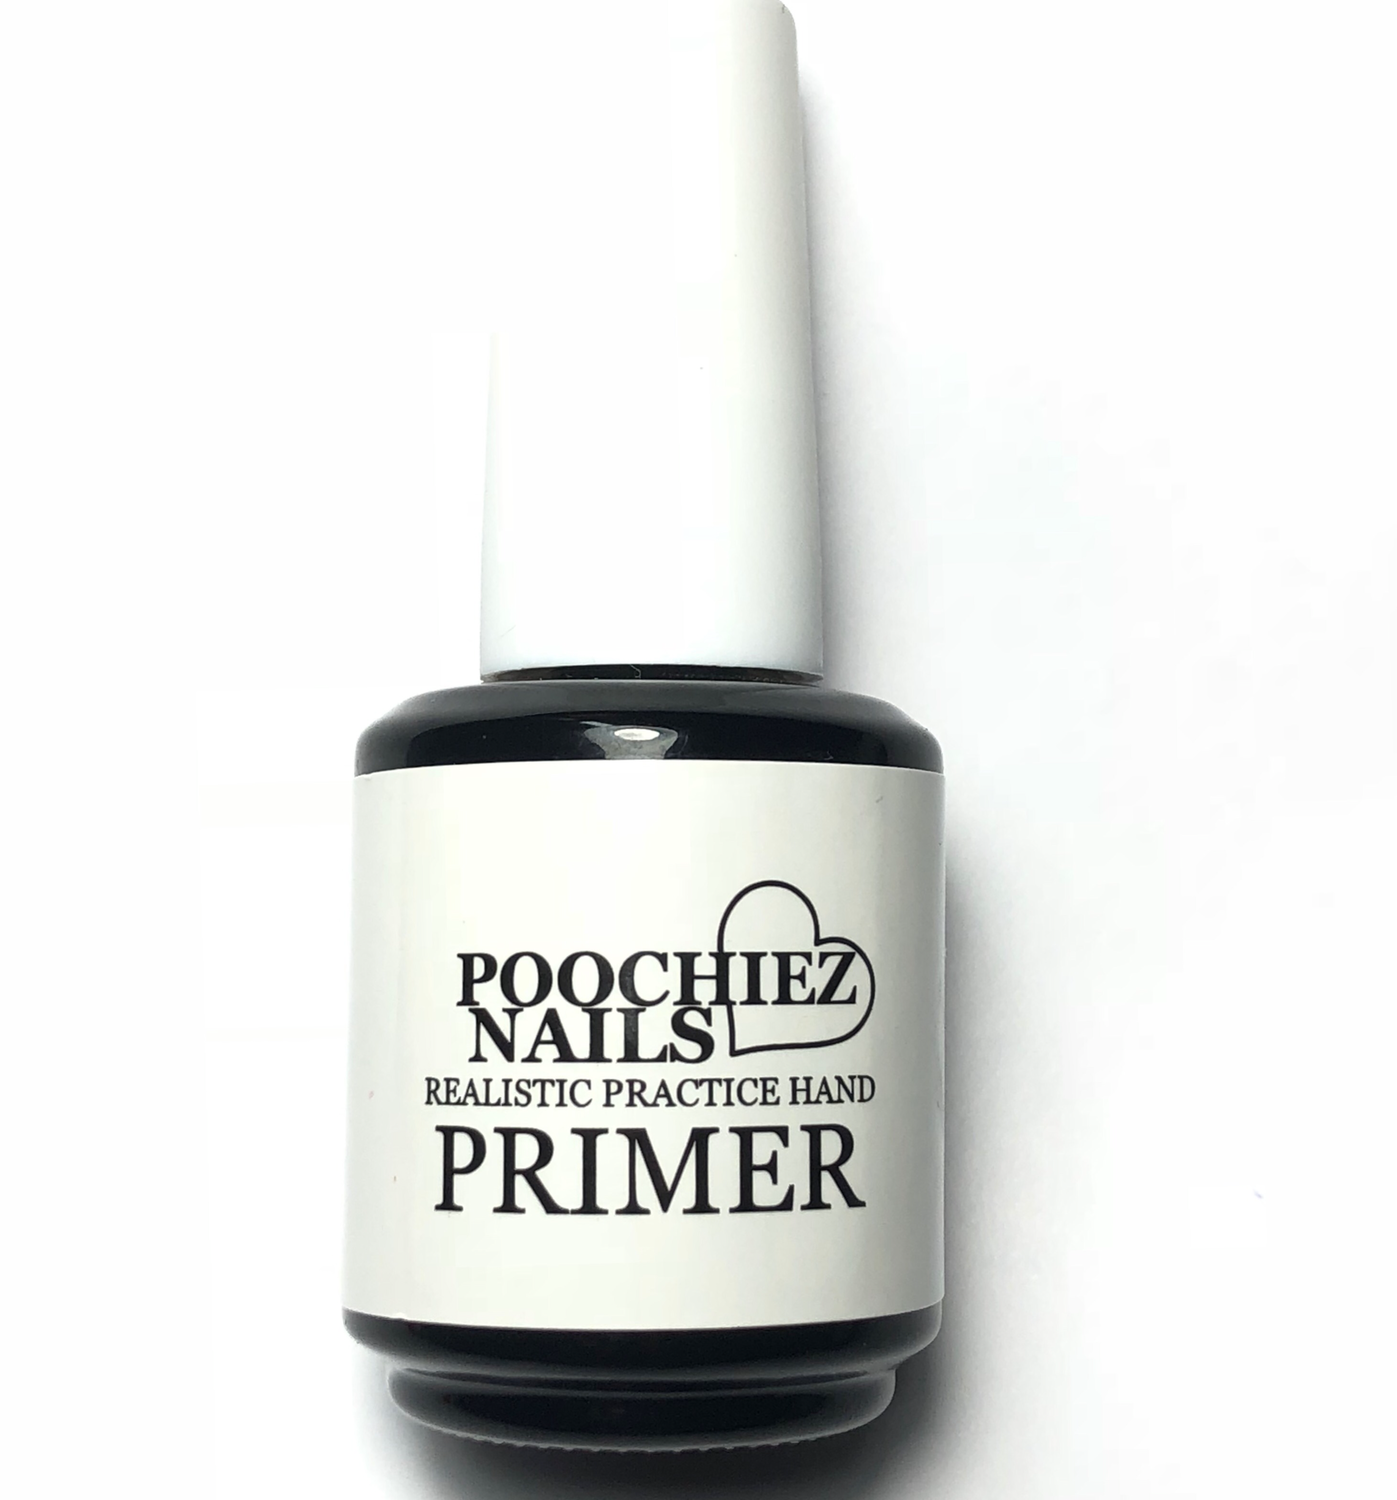 ITEM #17 PRIMER (FOR FAKE HAND ONLY) YOU CAN NOT USE THIS ON HUMANS